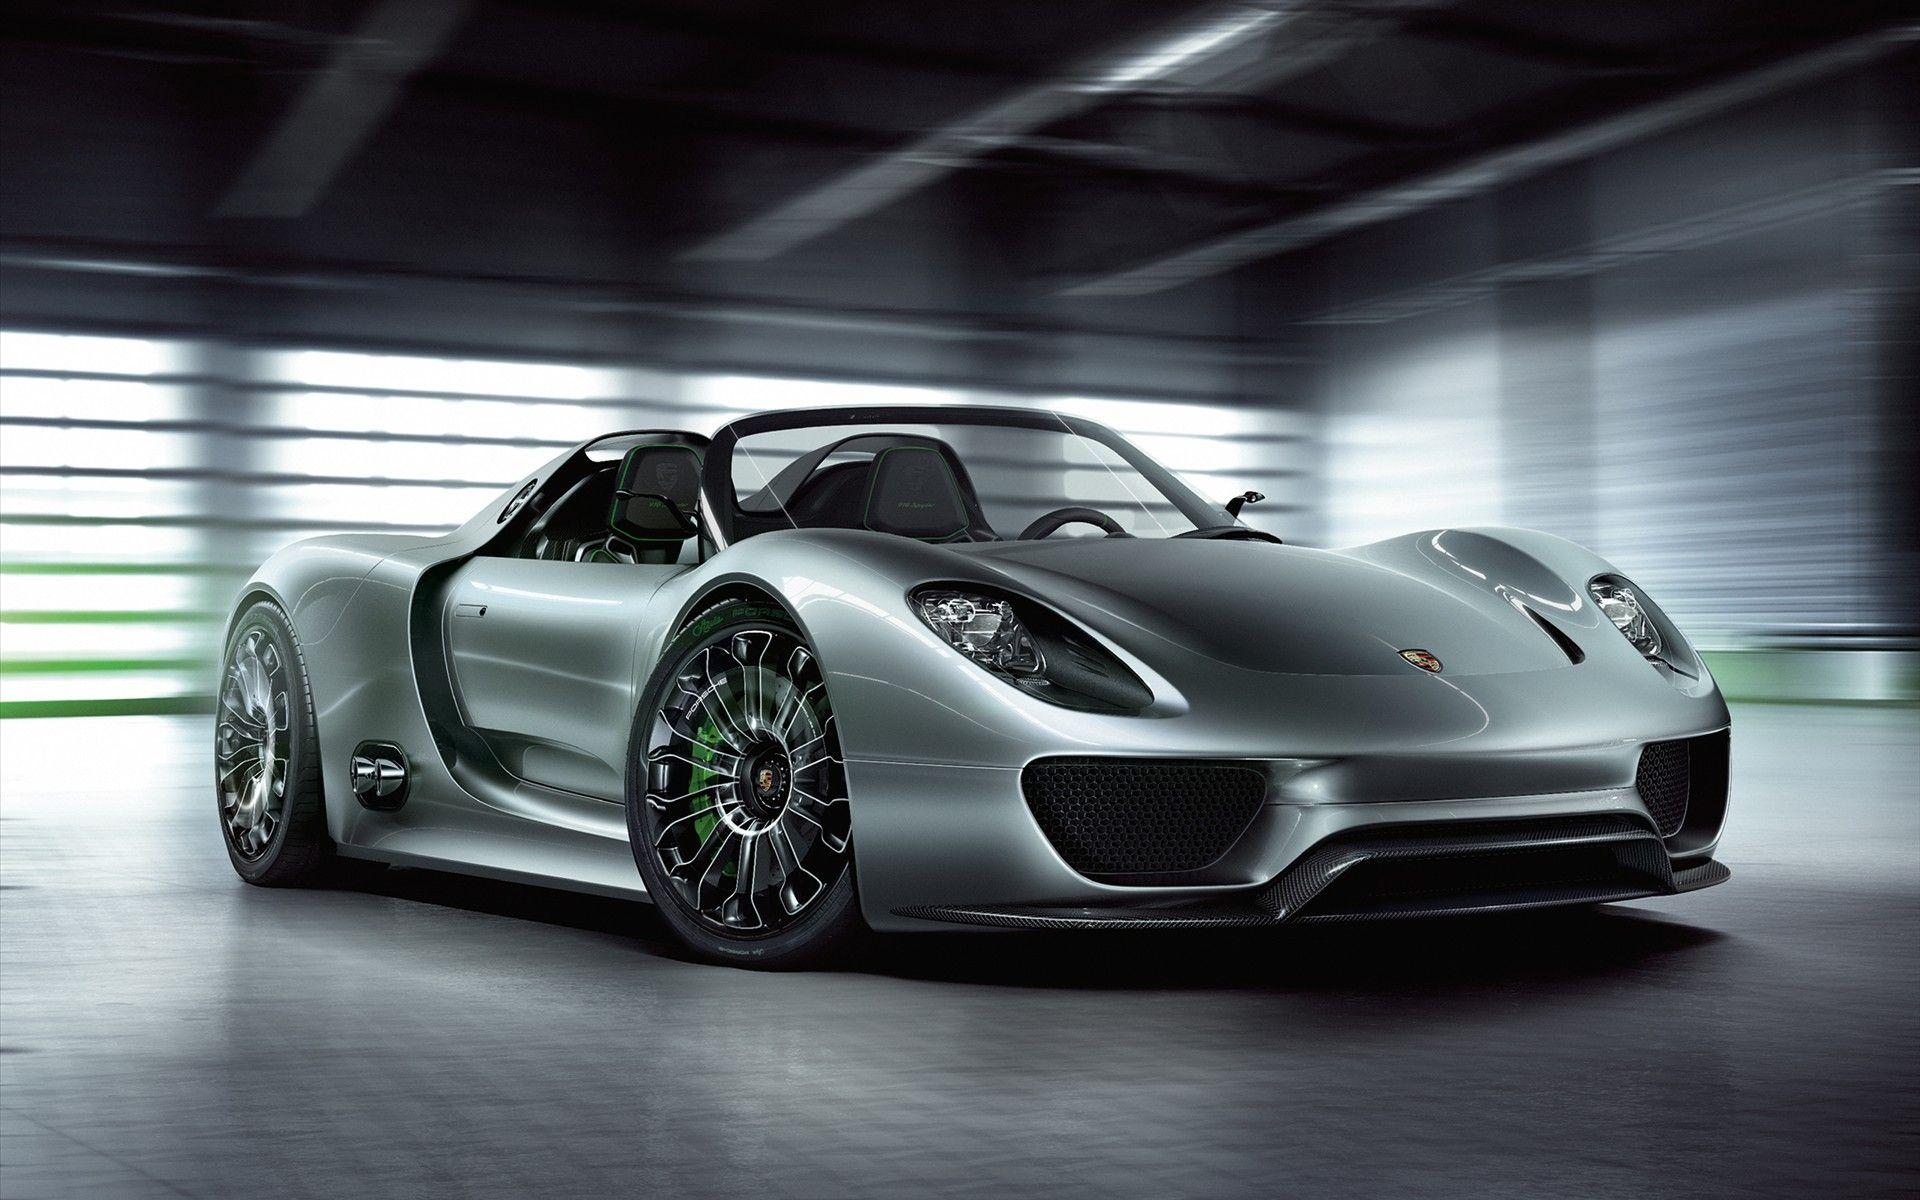 Daily Wallpaper: Porsche 918 Spyder Wallpapers